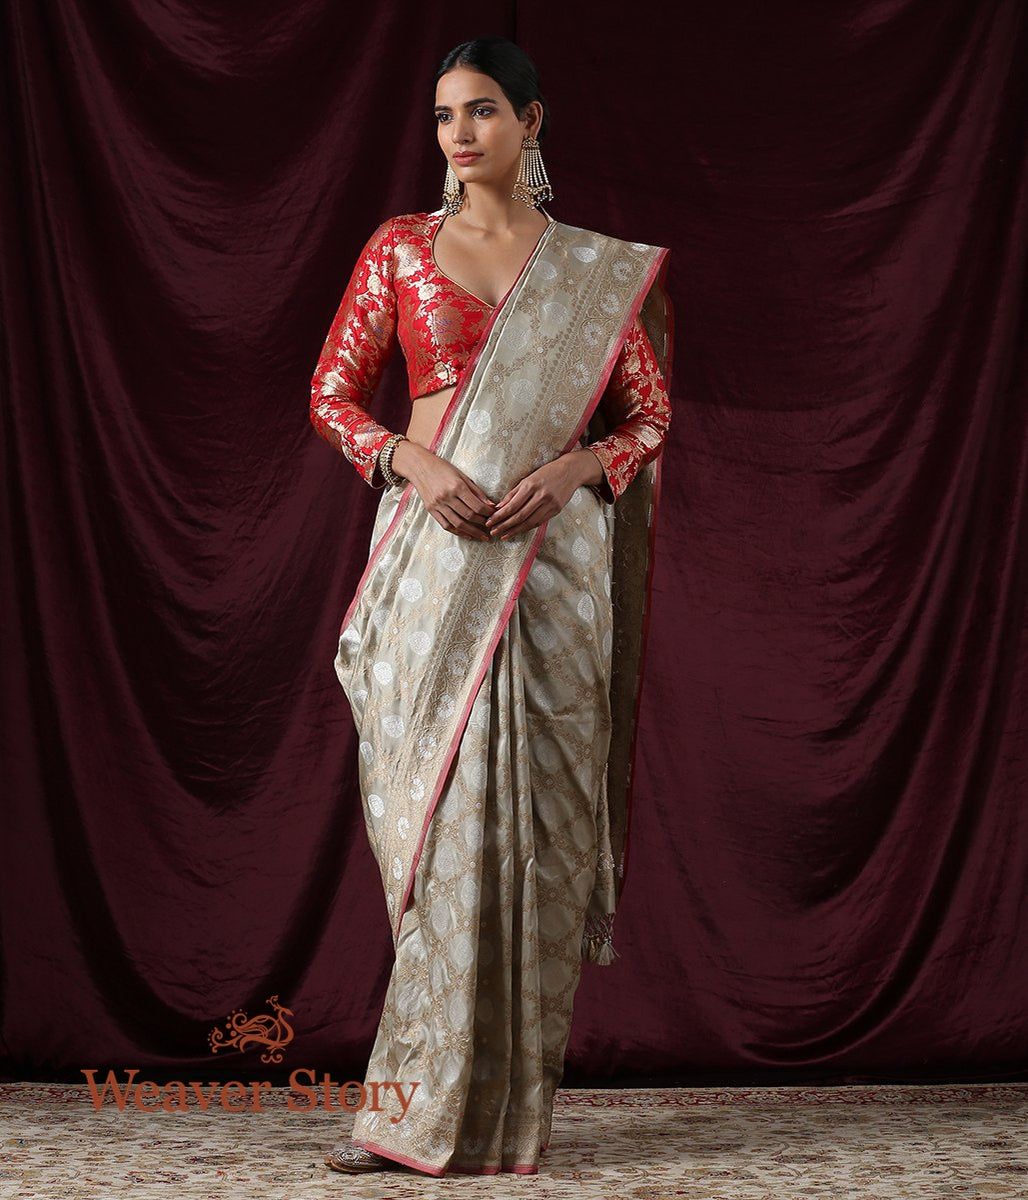 Handwoven Beige and Grey Banarasi Saree with Cutwork Weave